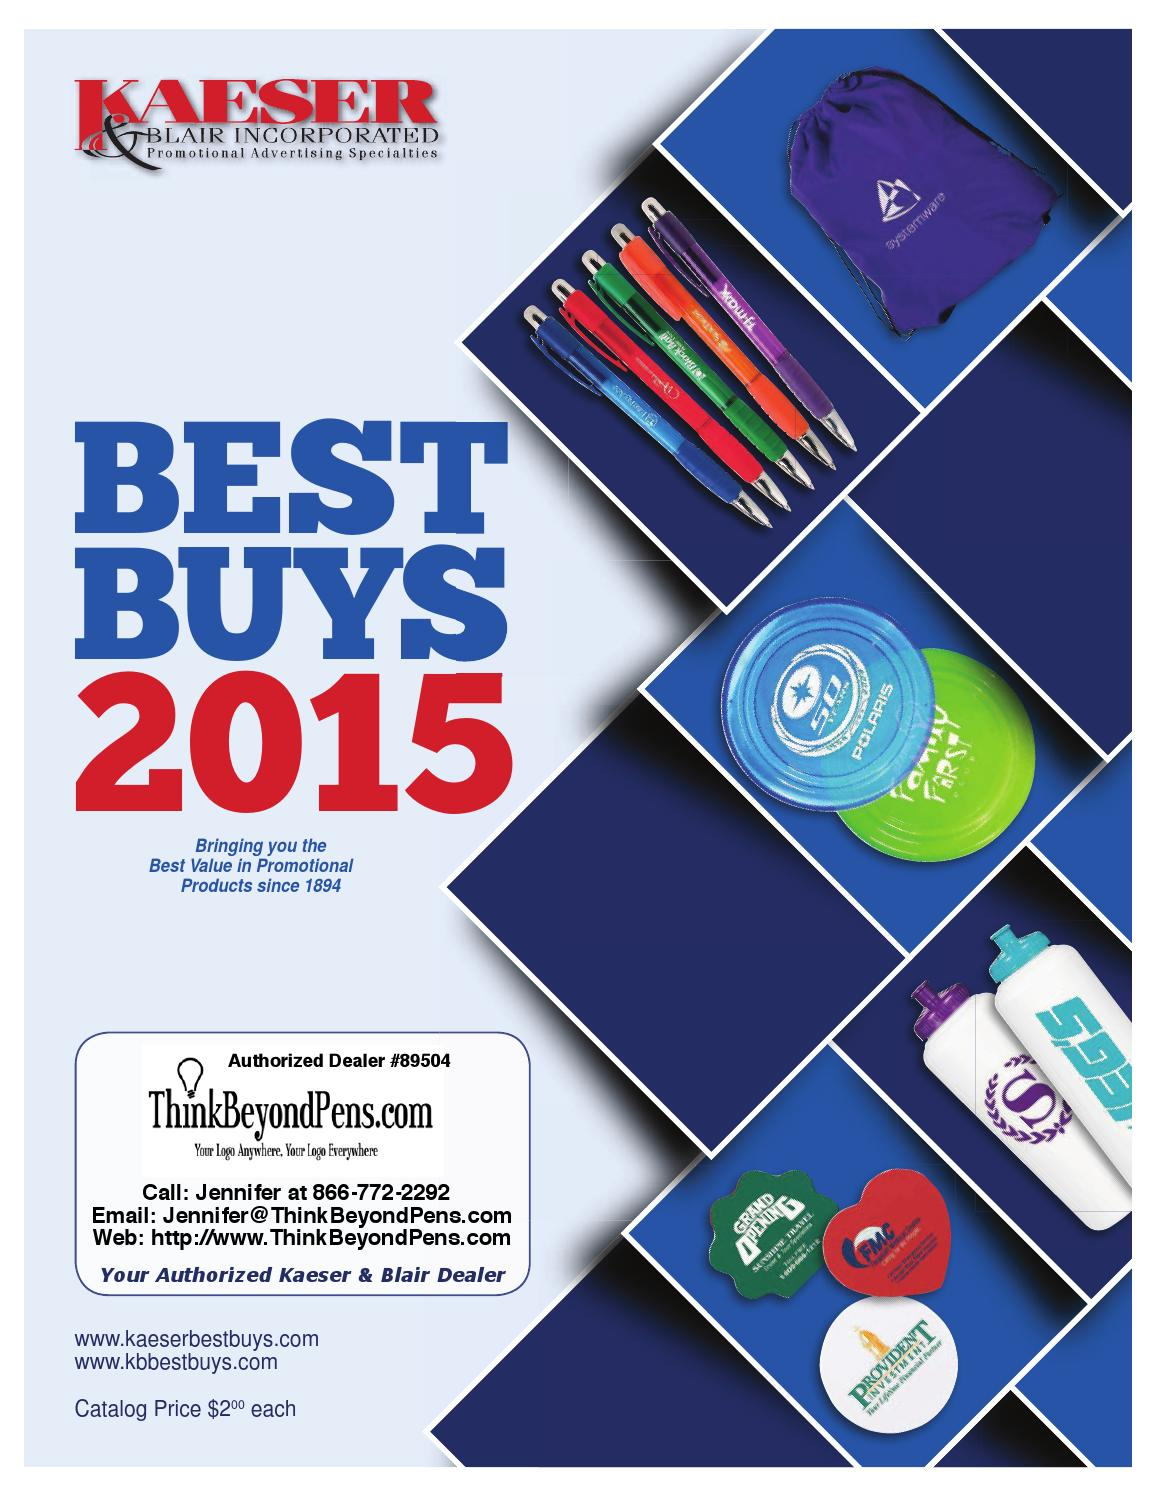 Kaeser and Blair Best Buys Catalog 2015 Promotional Products by Promo Items - issuu